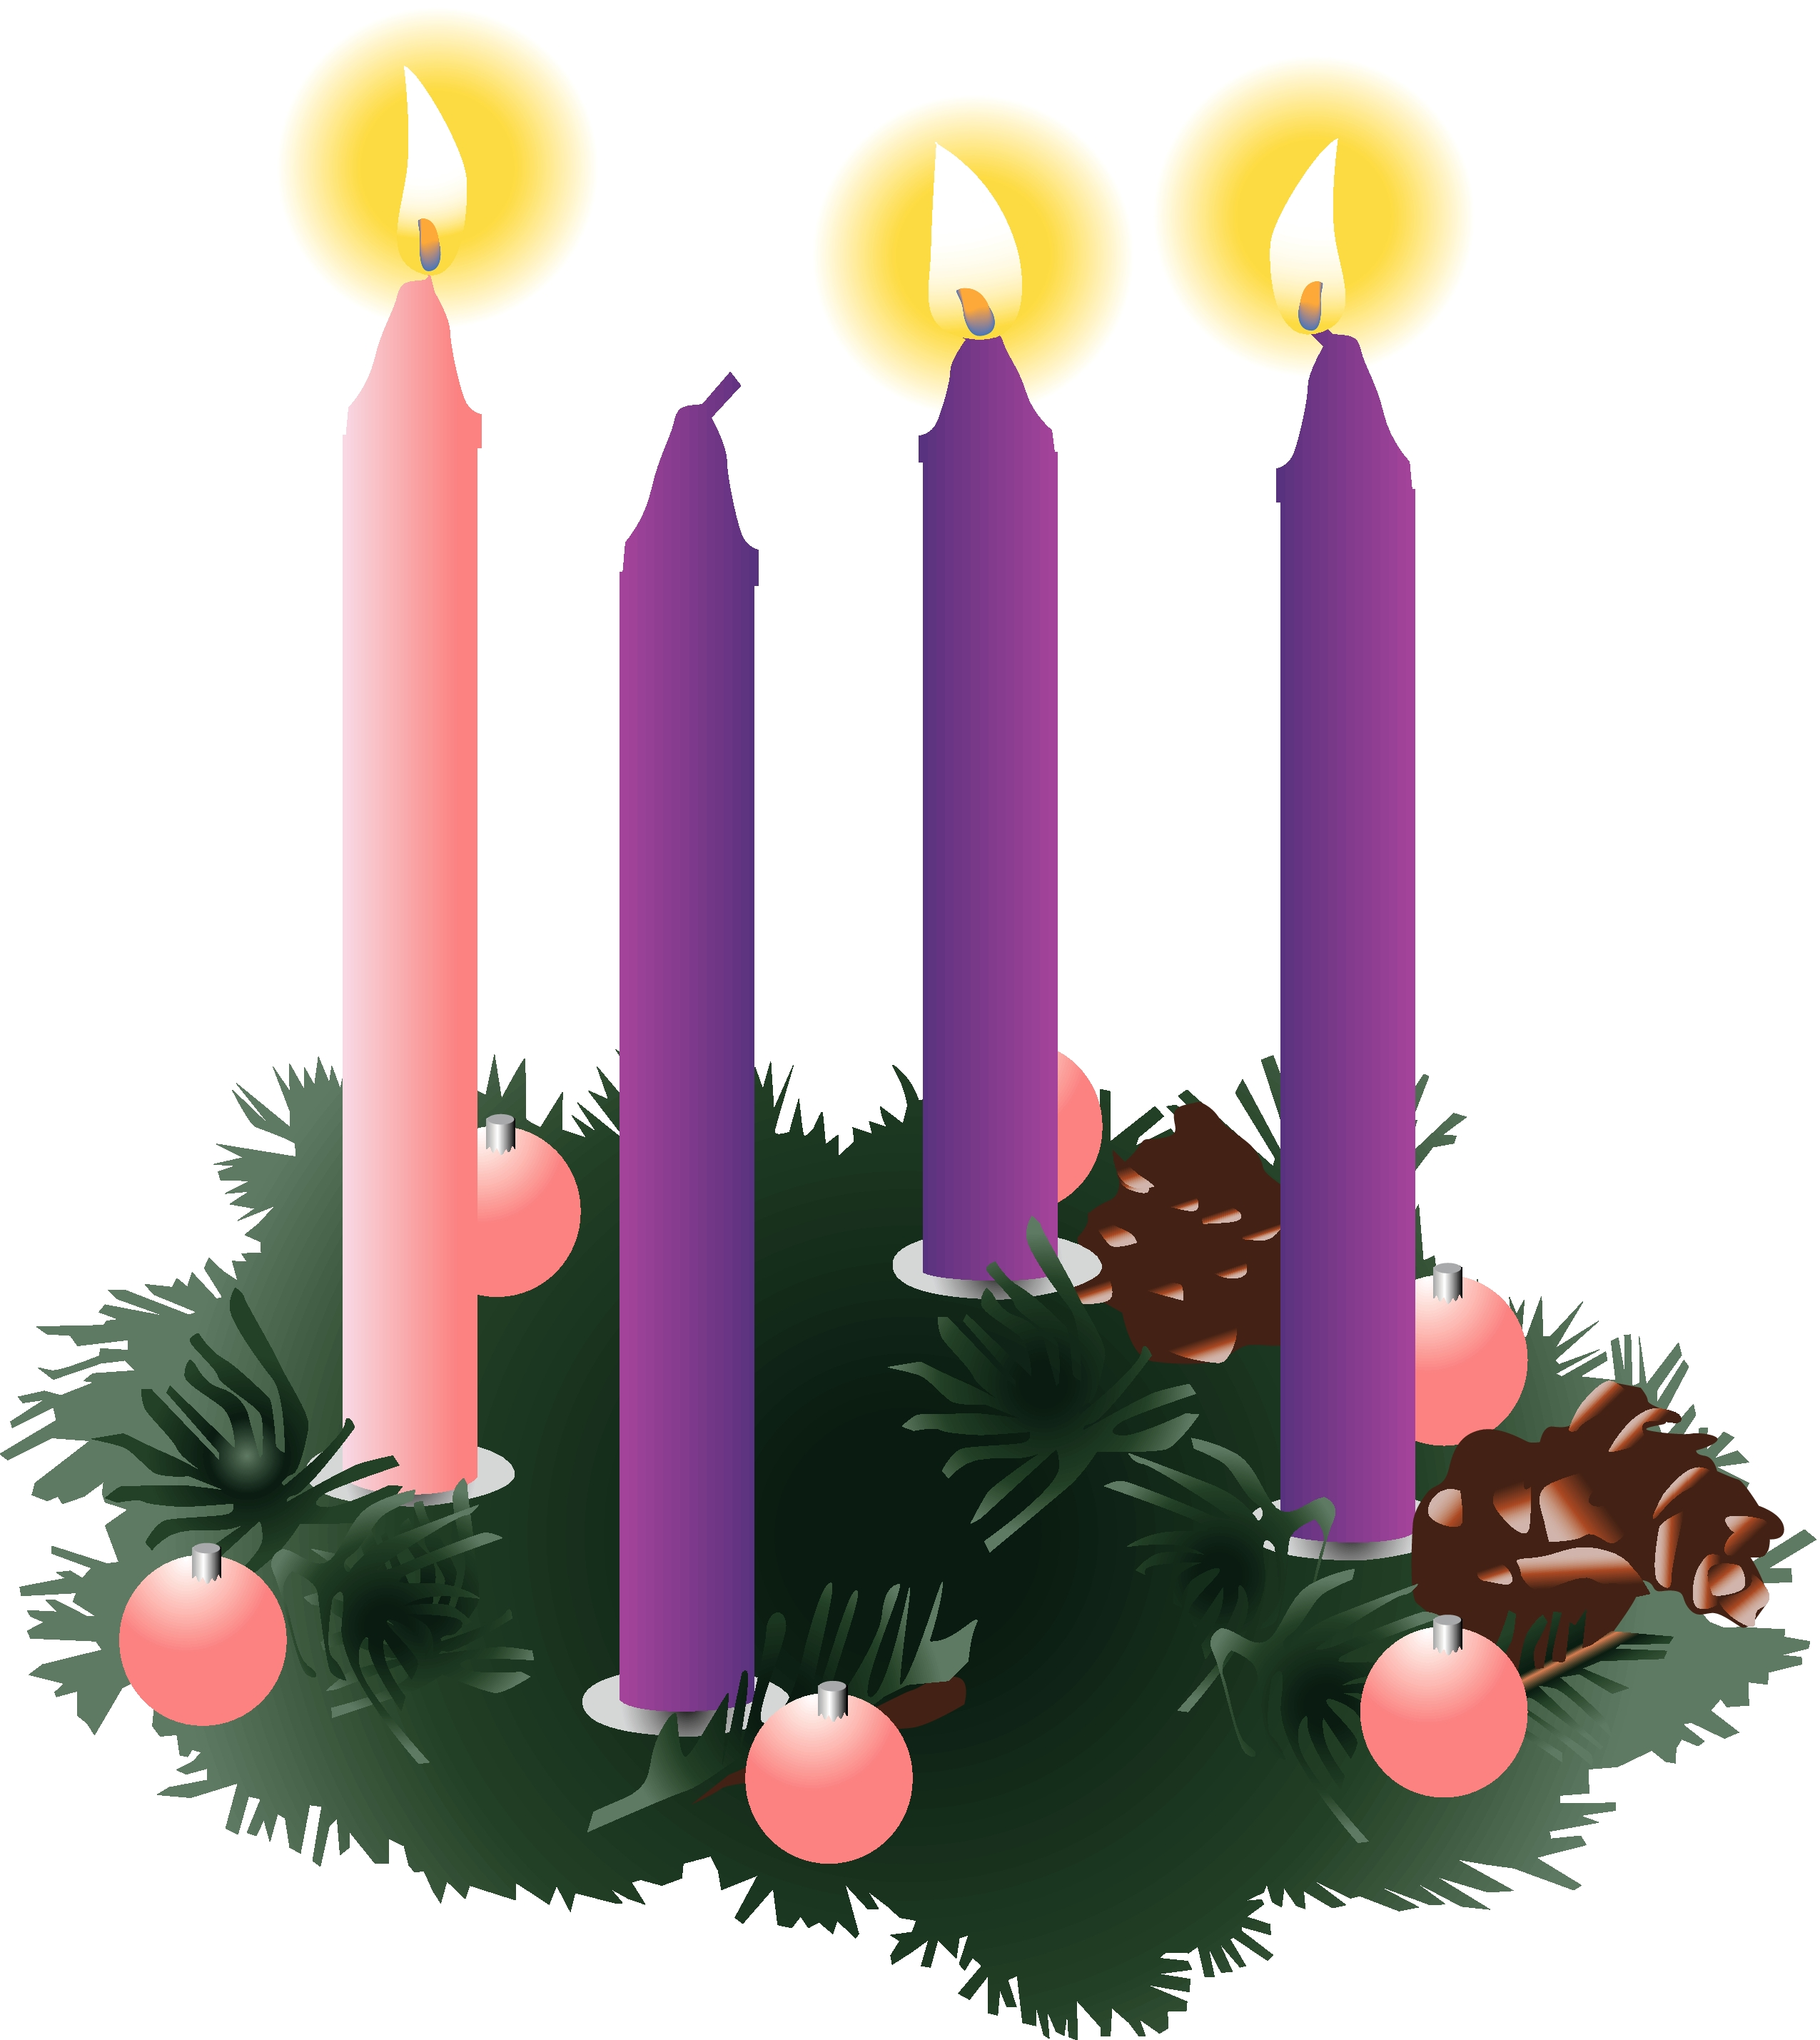 Advent wreath 3 clipart.